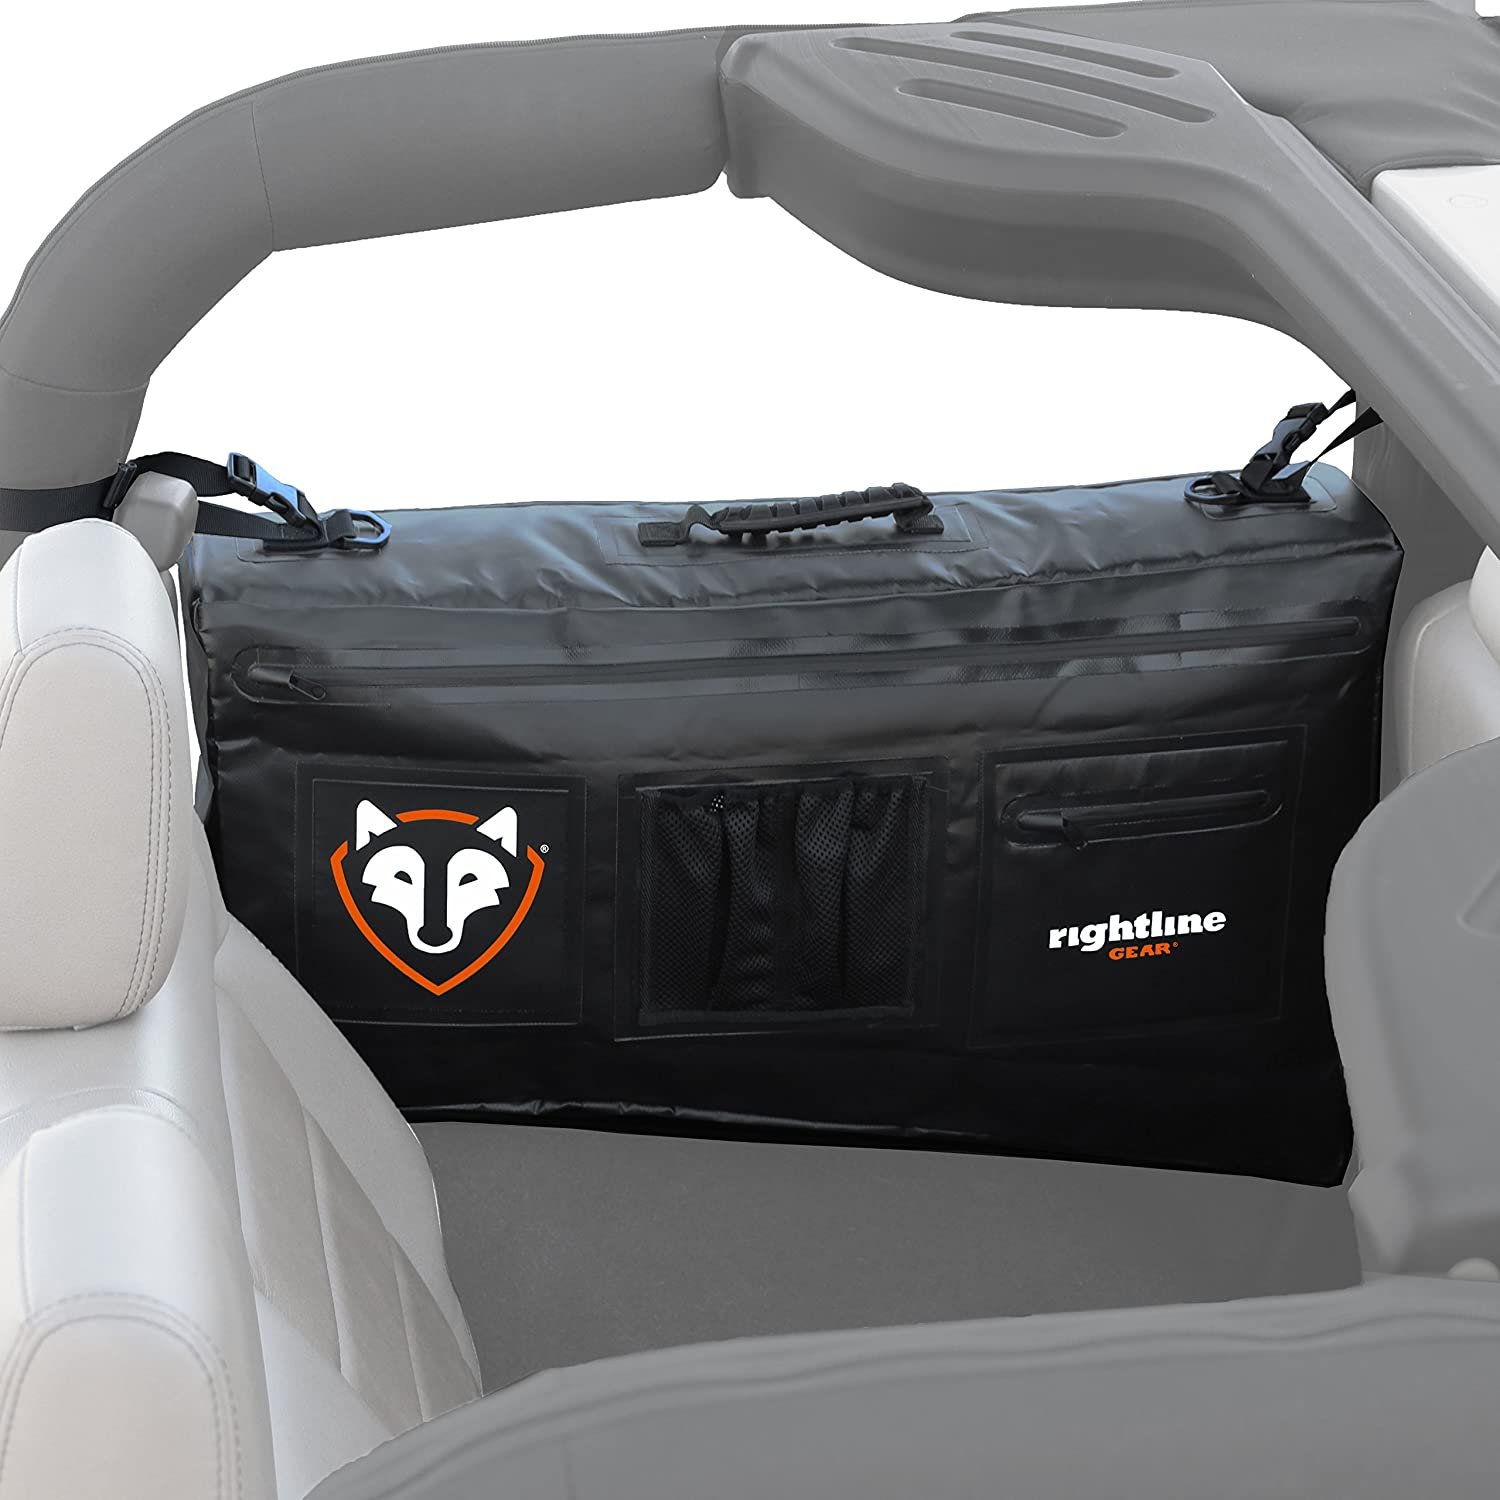 Rightline Gear 100J74 Side Storage Bag for Jeep